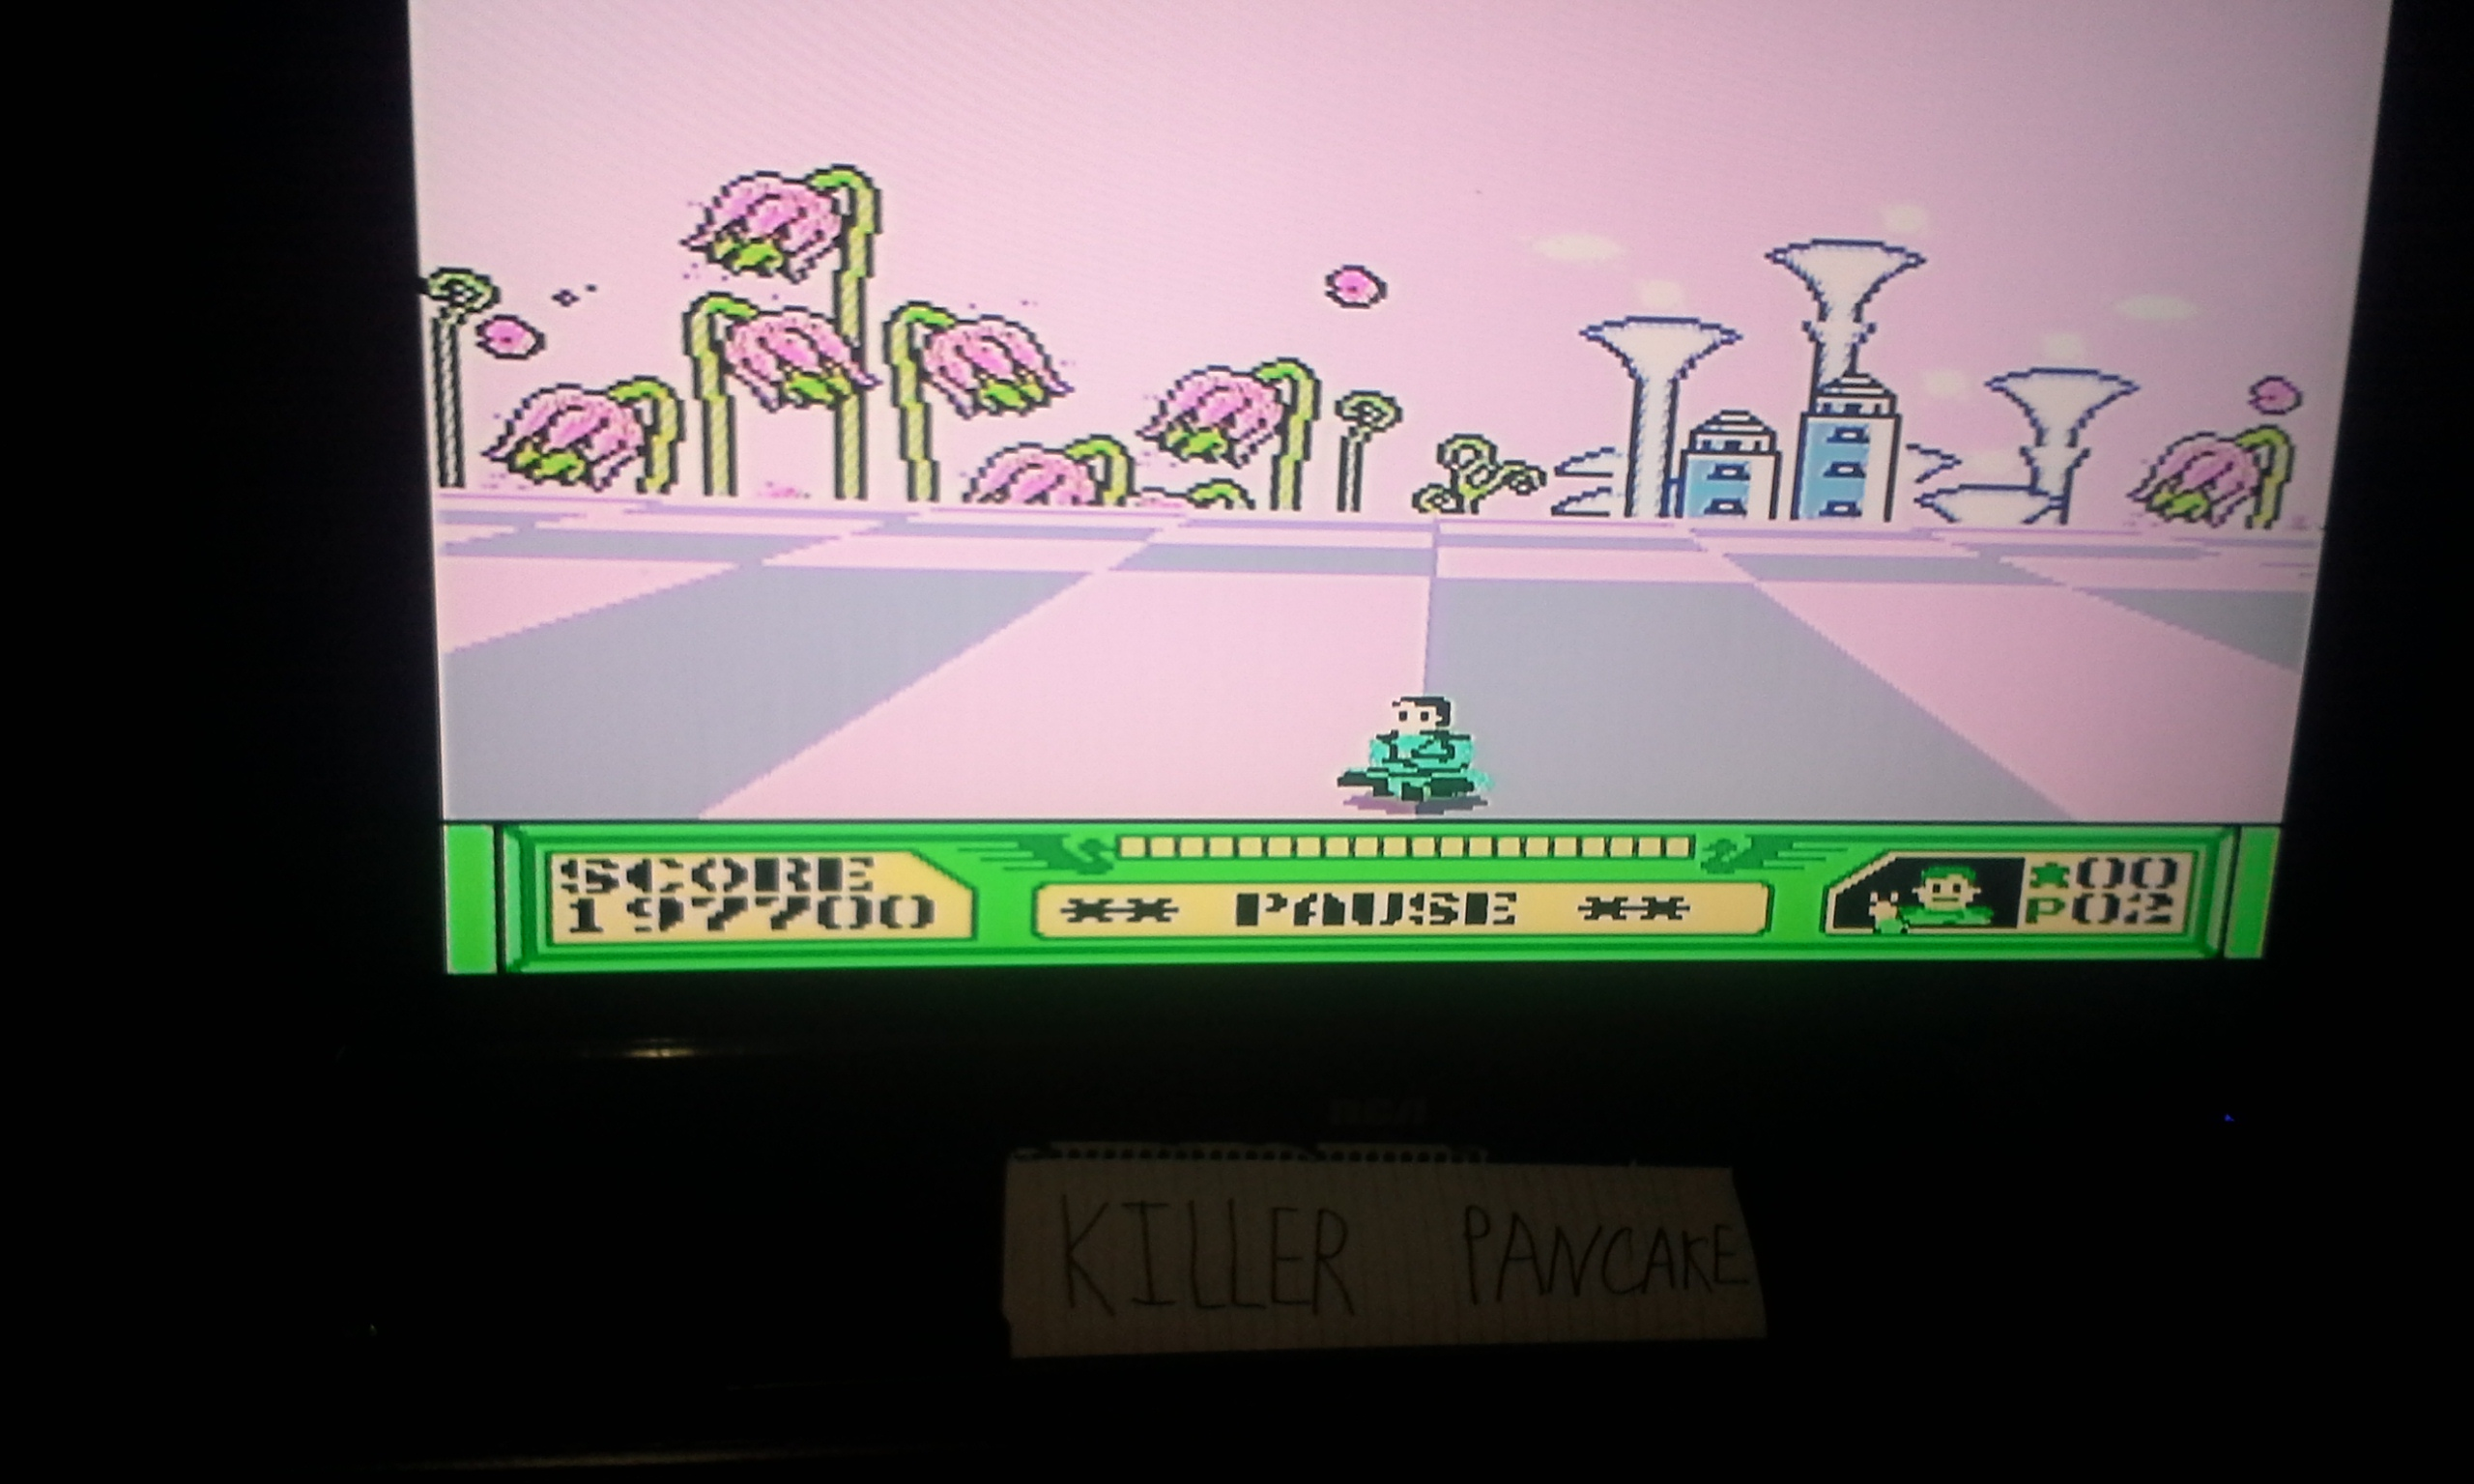 KillerPancake: 3-D World Runner (NES/Famicom) 197,700 points on 2014-11-16 21:14:22